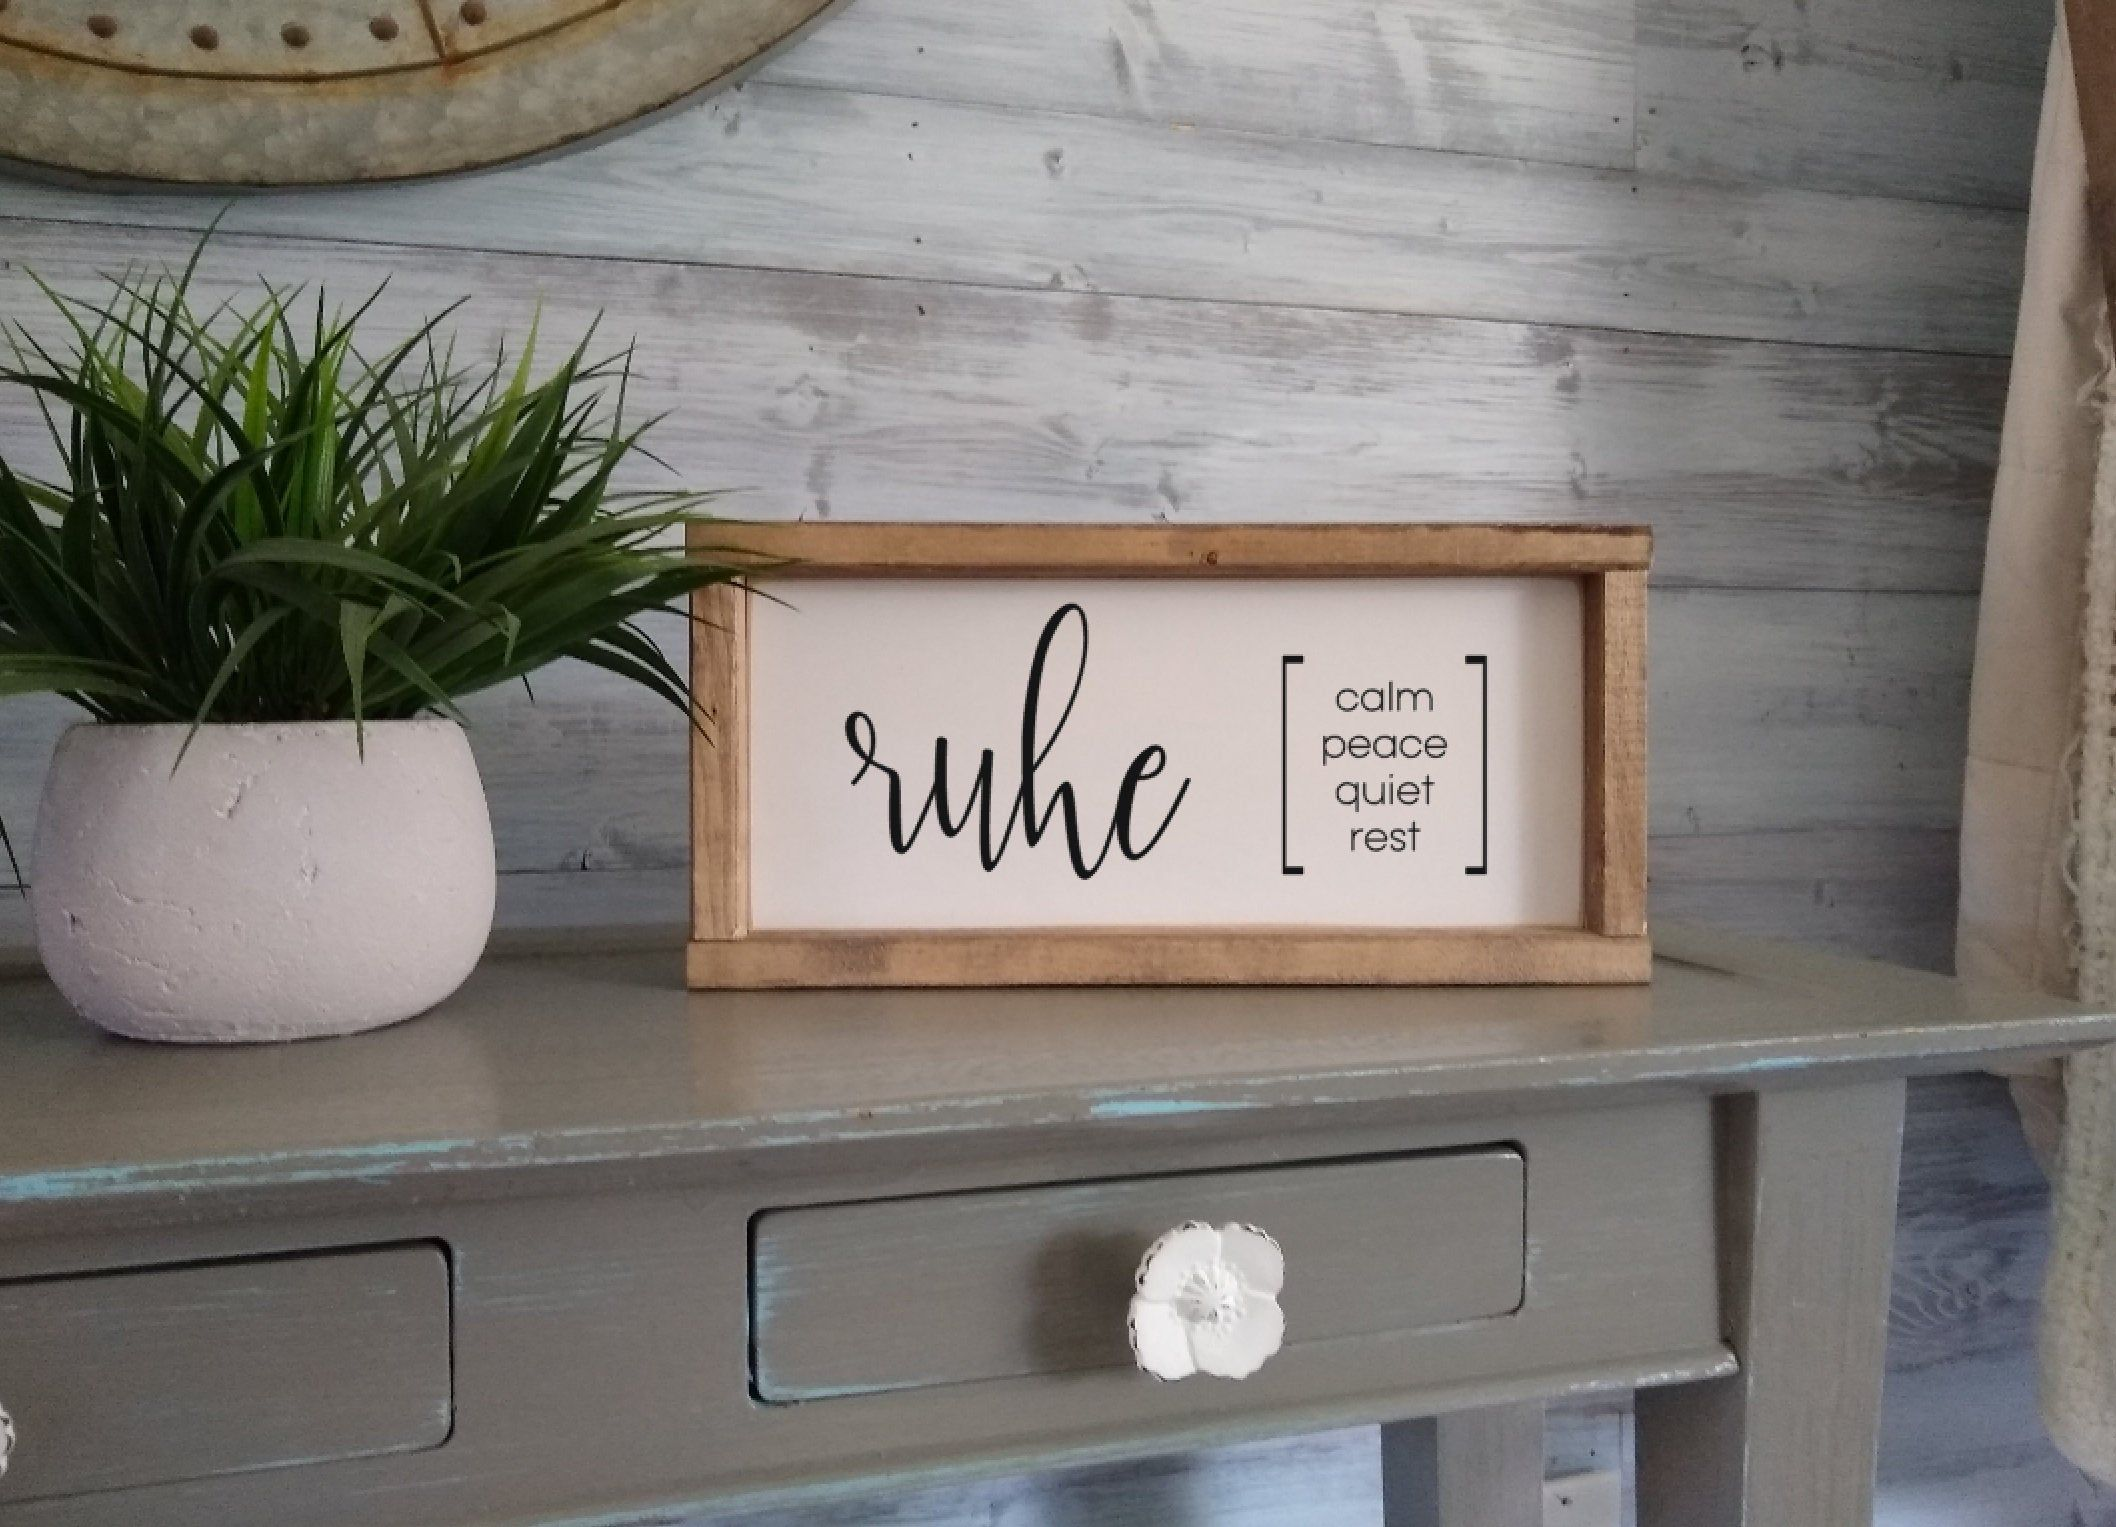 Ruhe Sign, German sign, Deutch, home and living, Germany